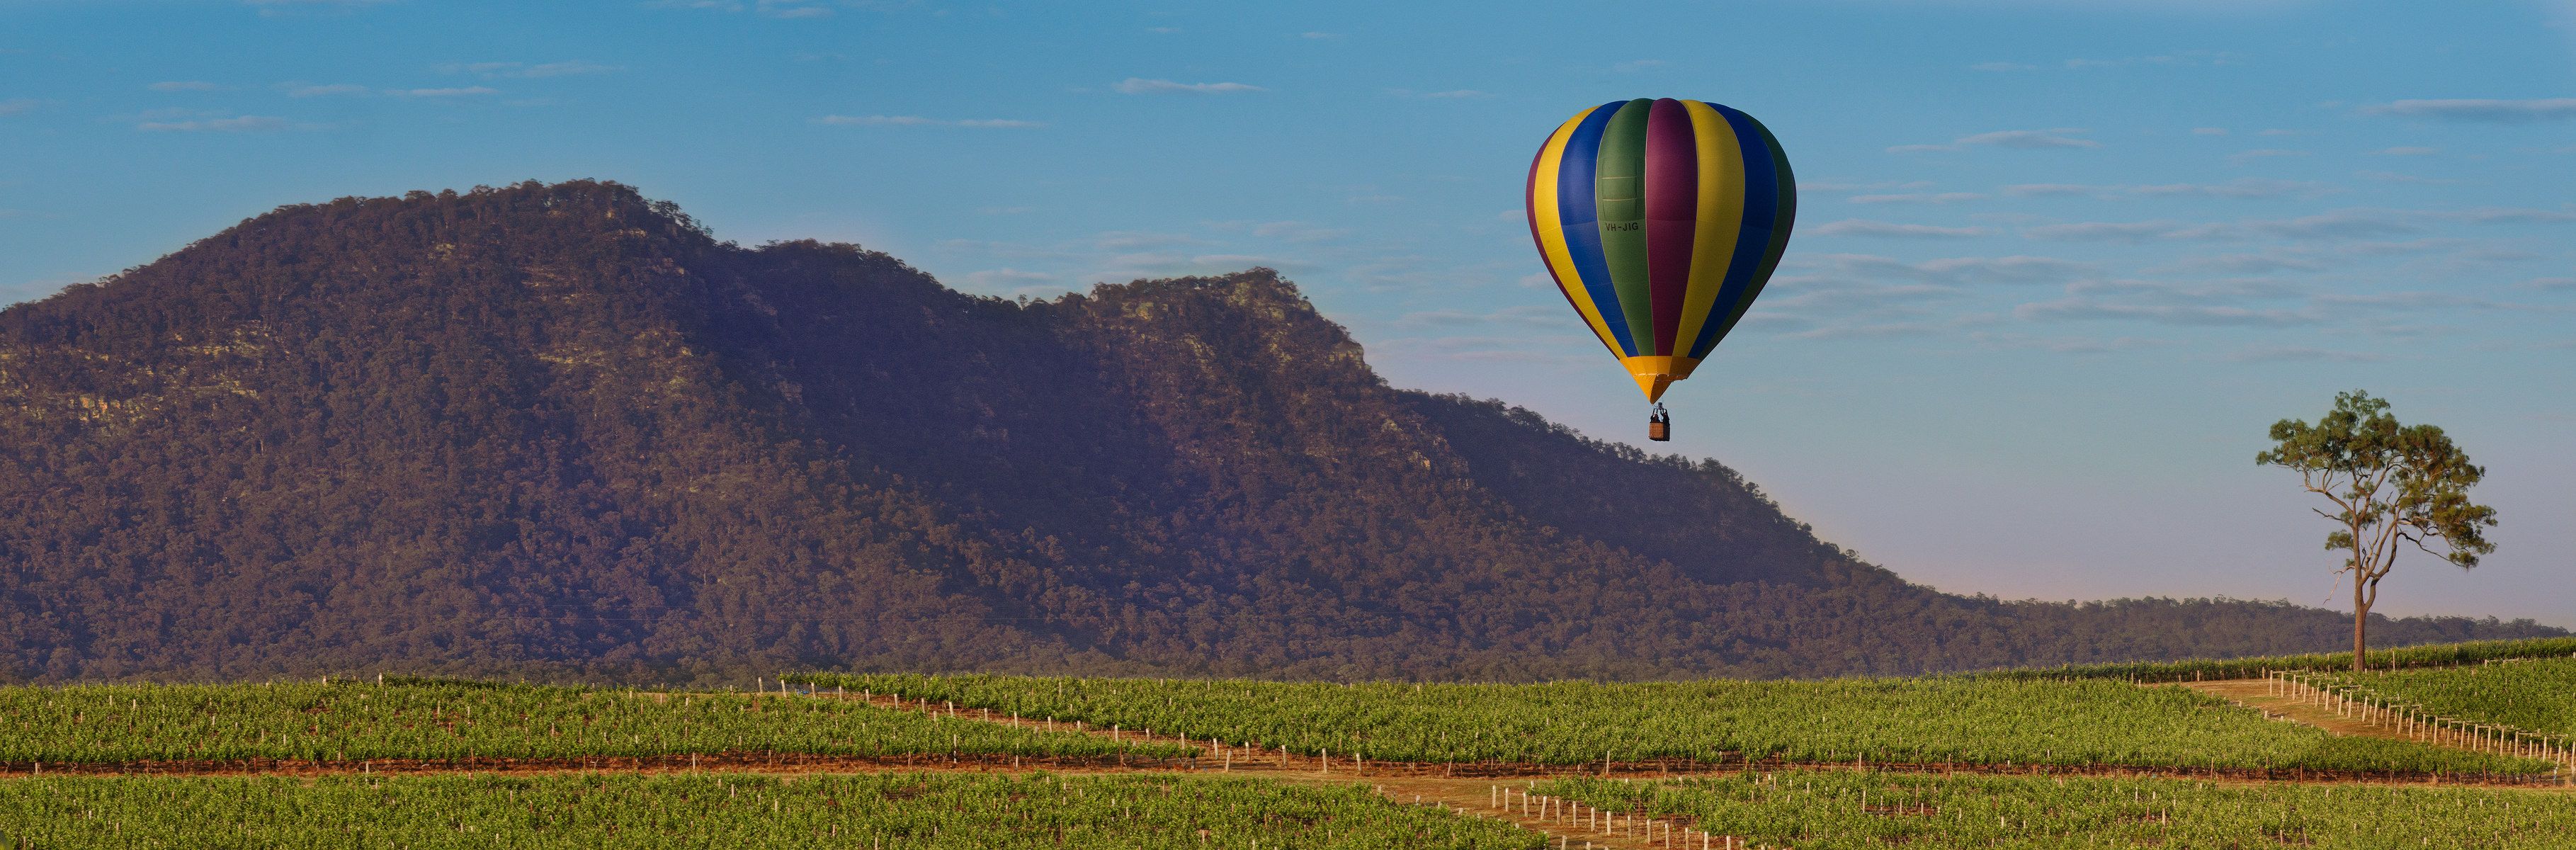 20151017_Huntervalley Balloon Fiesta_NMP4615_S